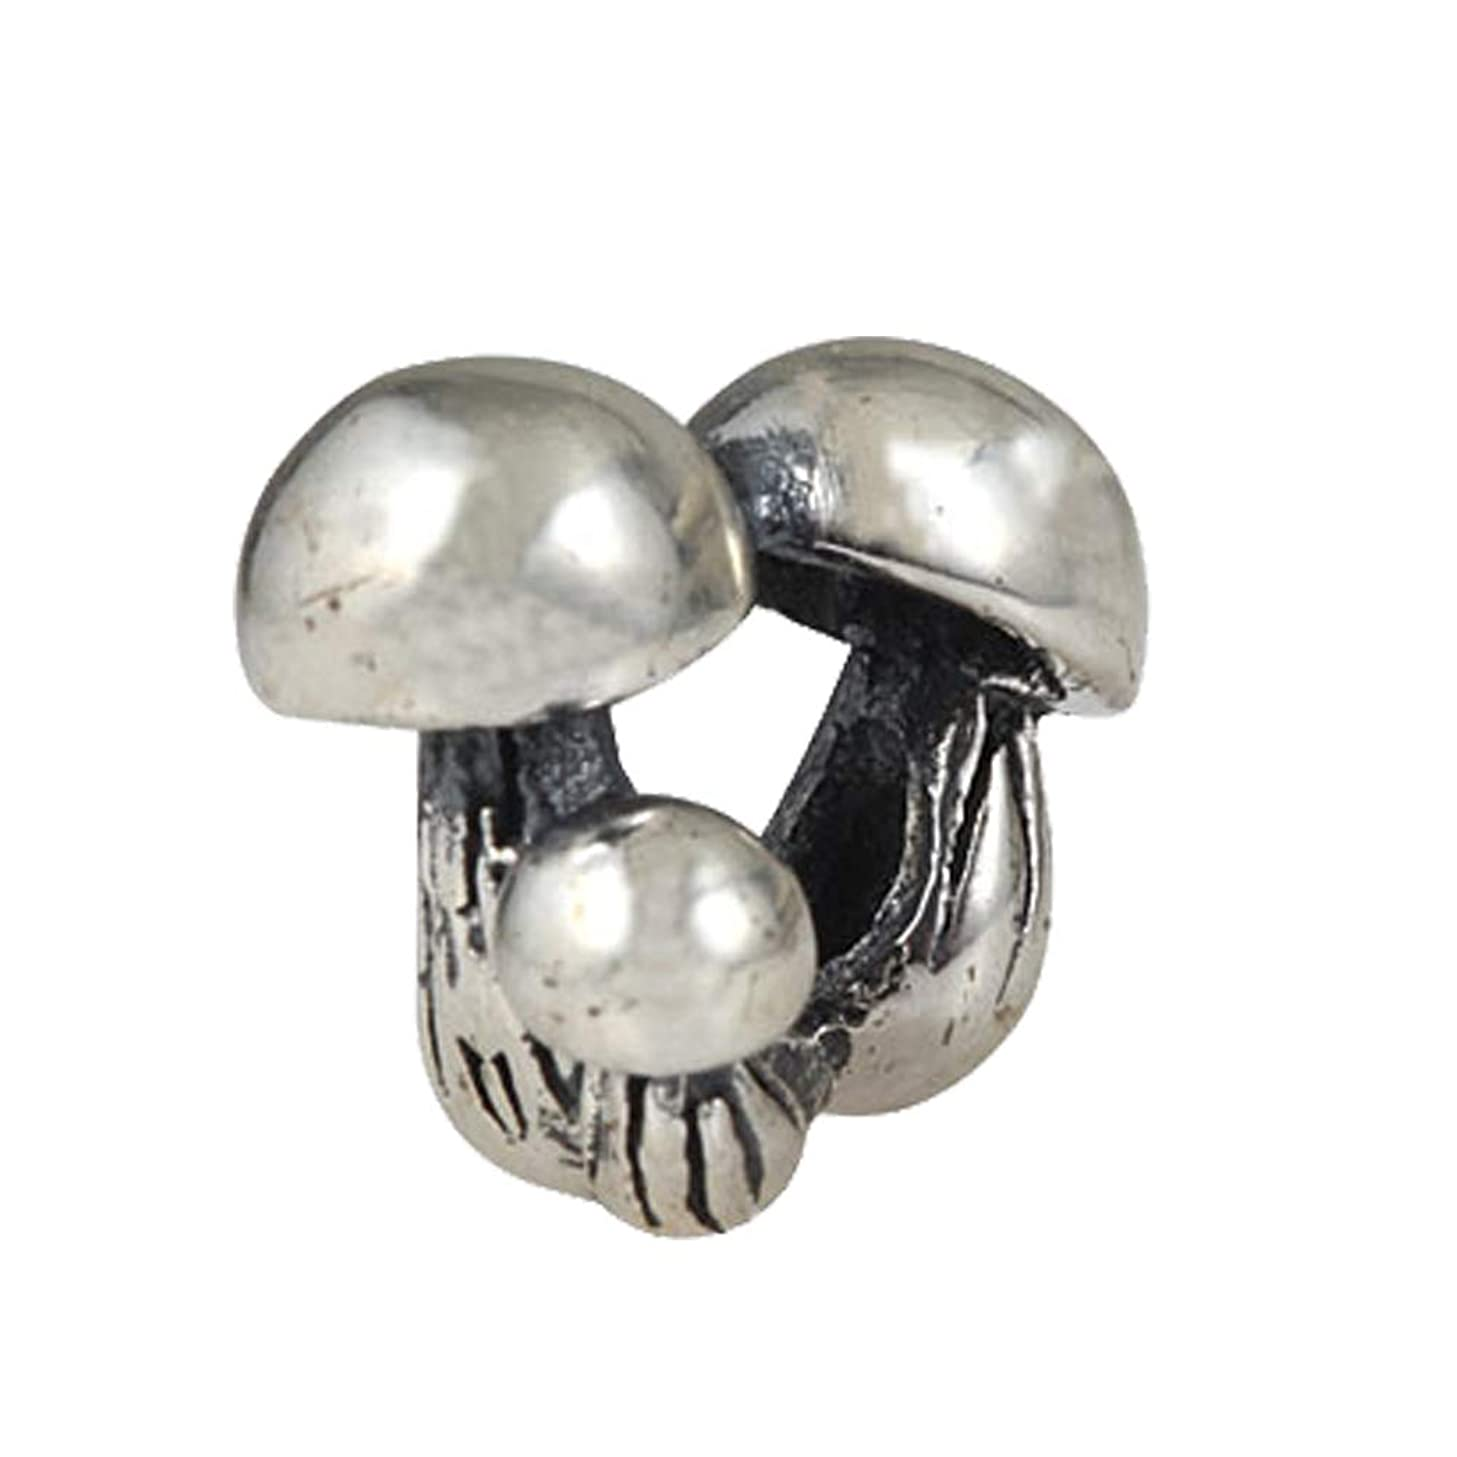 Mushroom Charm 925 Standard Sterling Silver Family Bead Charm Happy beads Fits European DIY Charms Bracelet